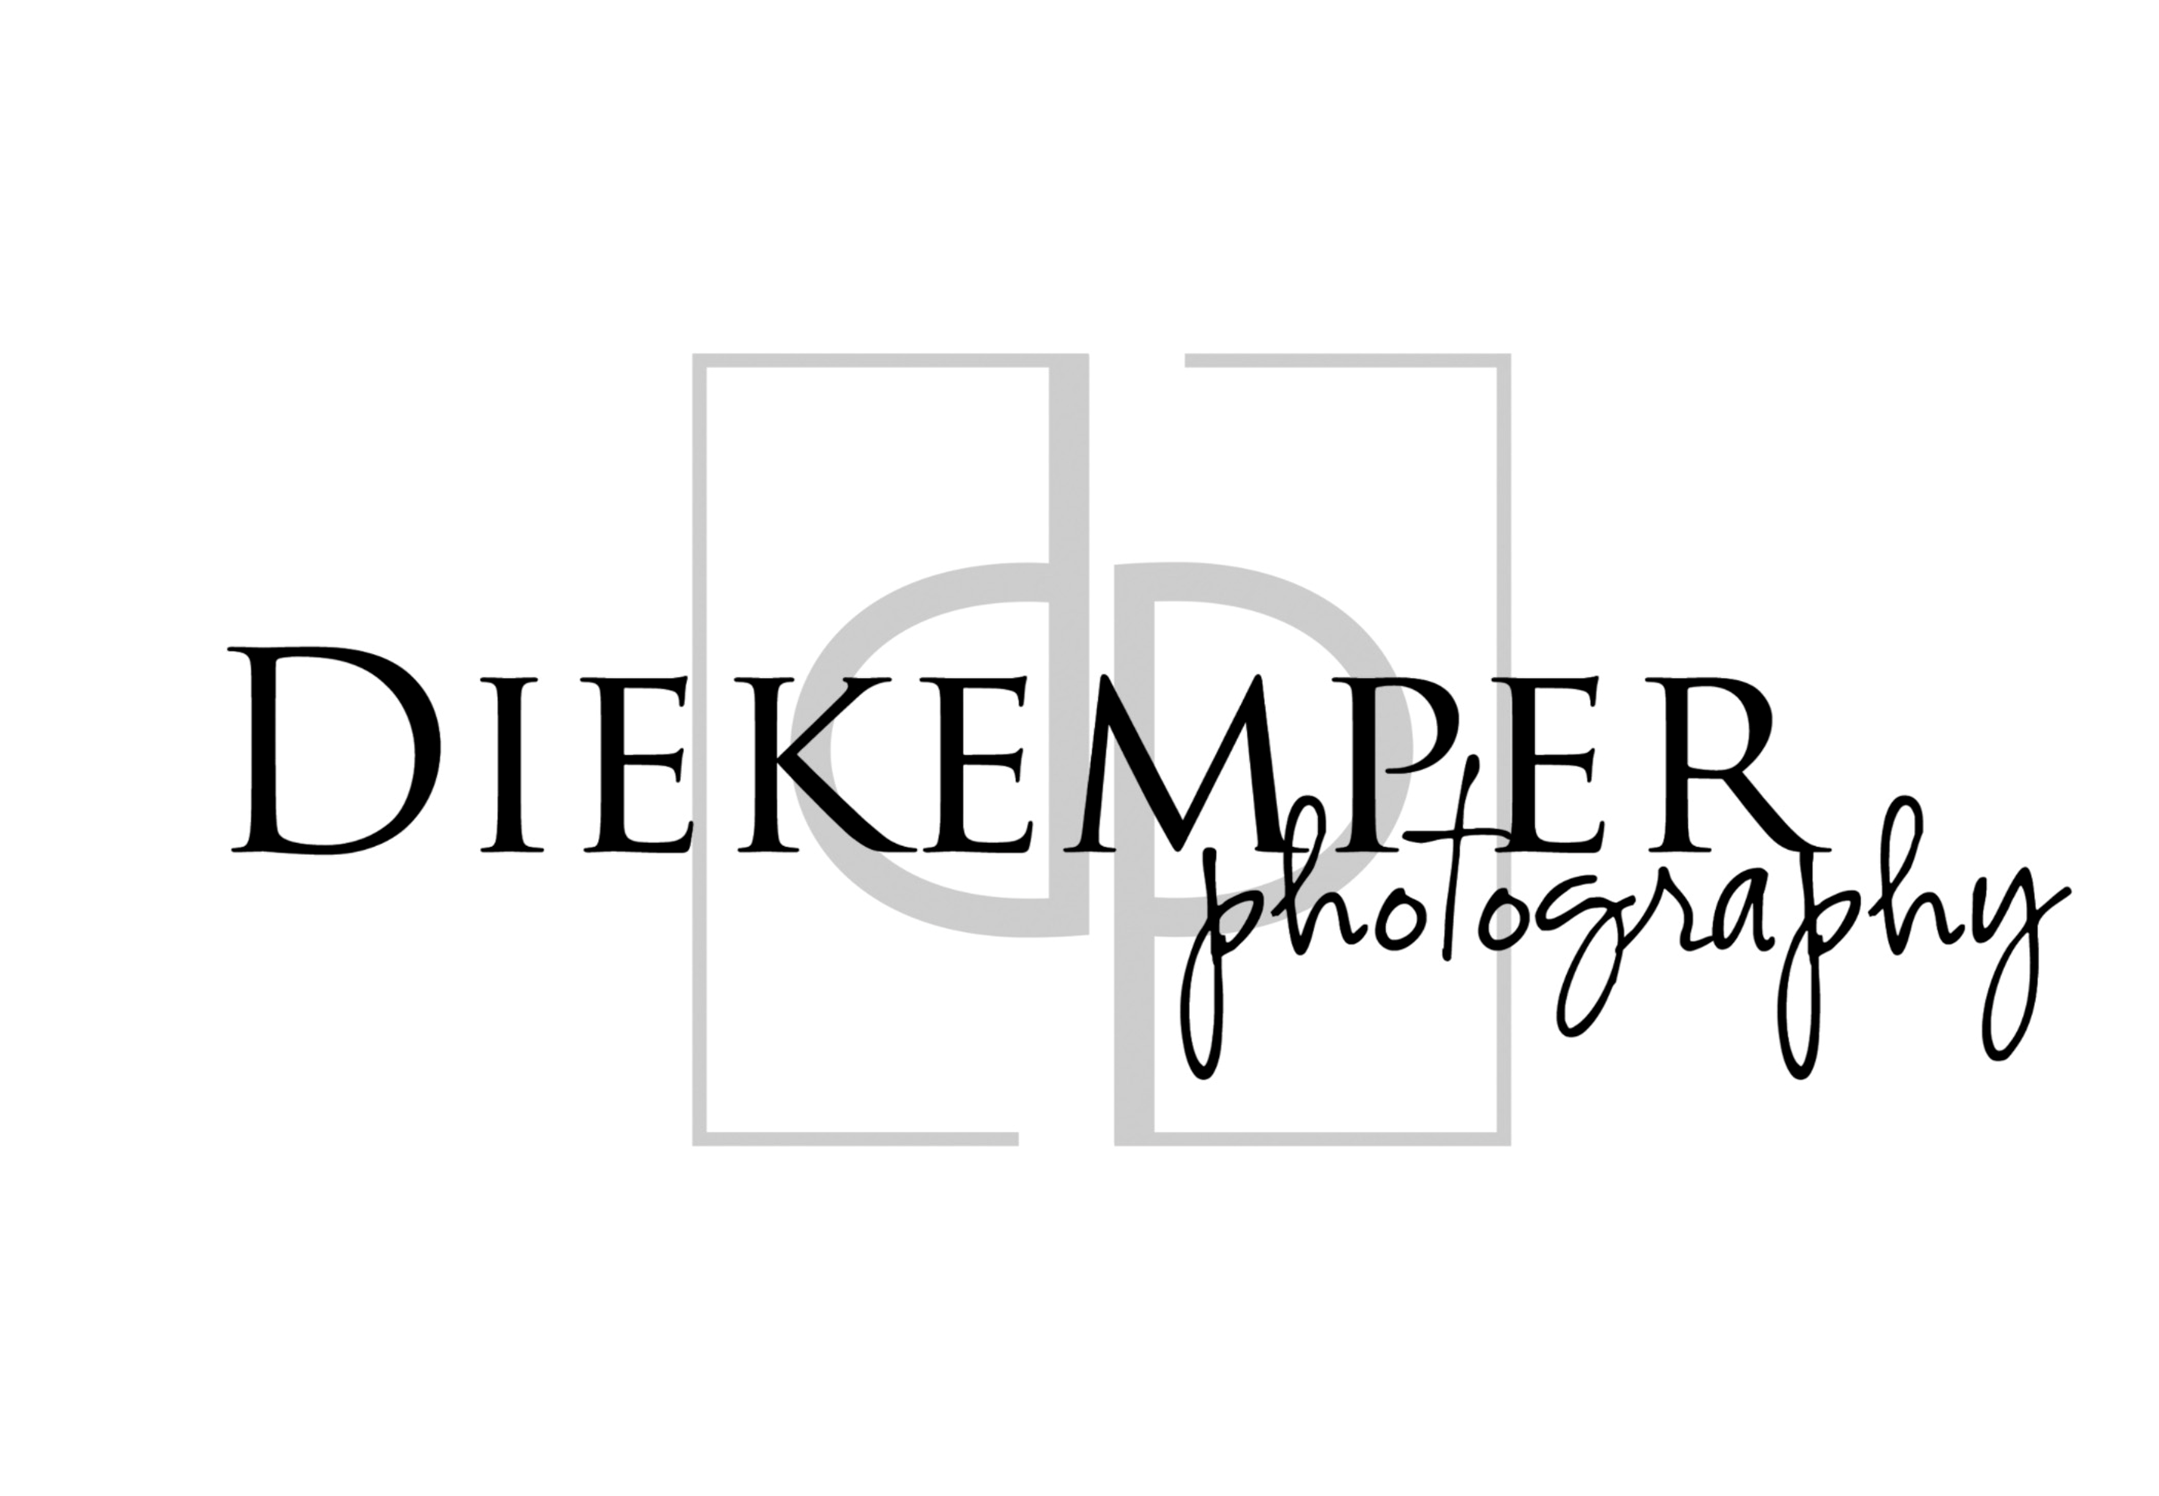 Diekemper Photography